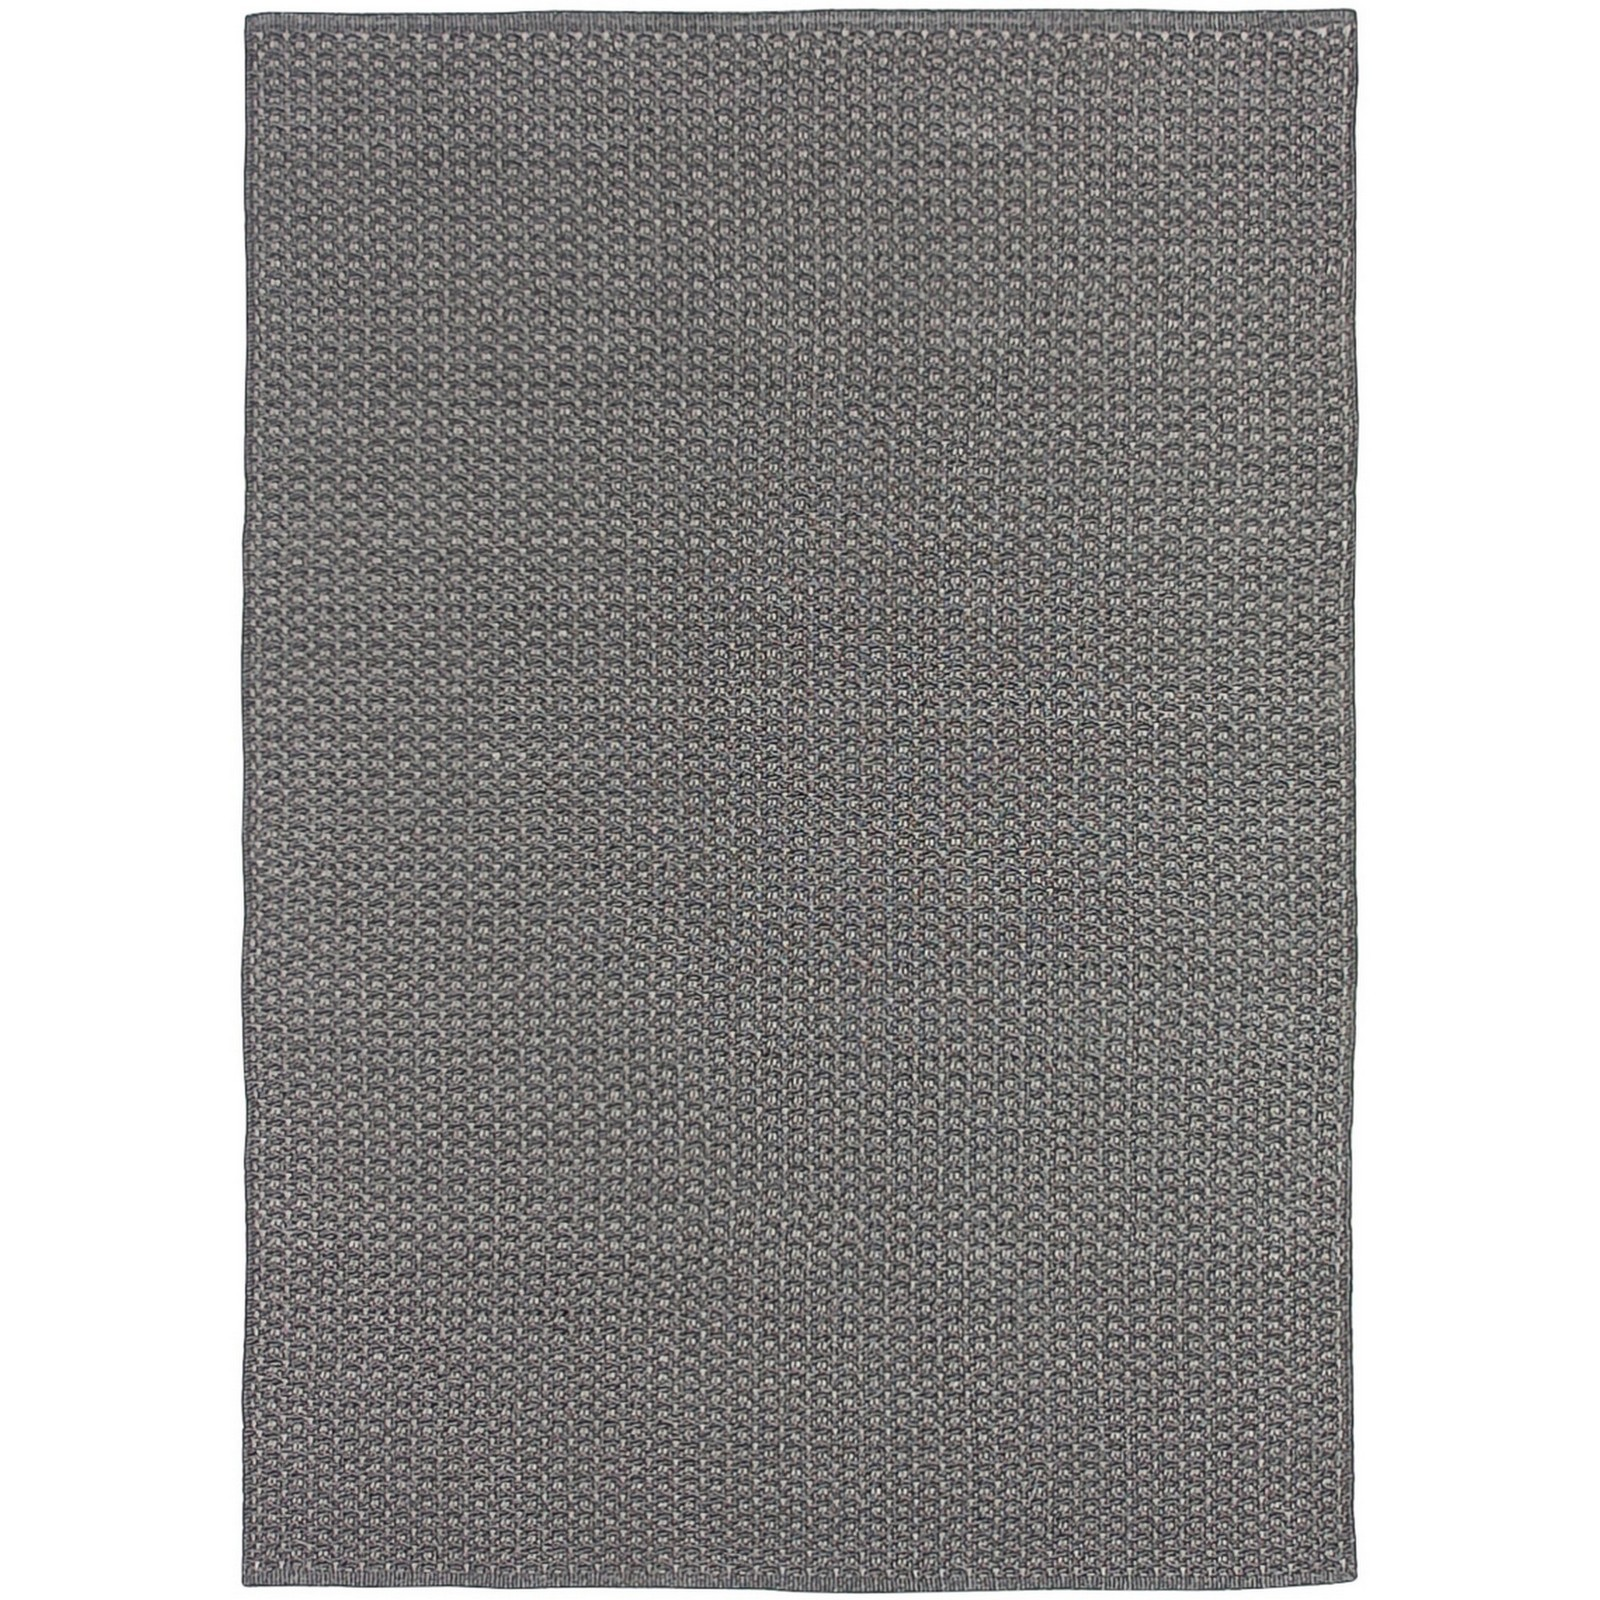 Seasons Rustic Hand Braided Indoor/Outdoor Rug, 300x400cm, Gun Metal